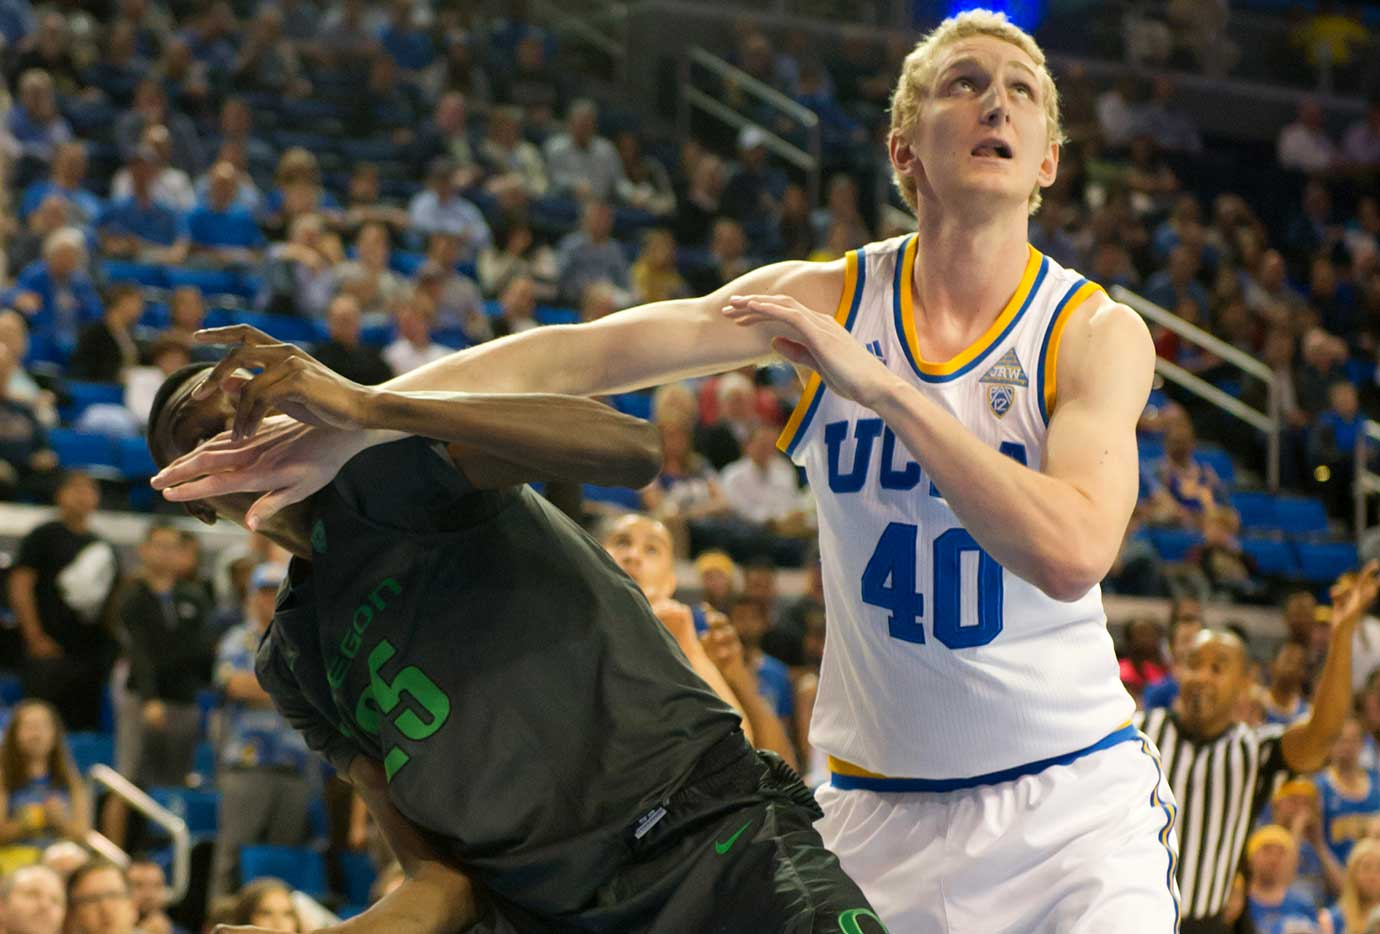 UCLA Bruins center Thomas Welsh fights for position against Oregon's Chris Boucher.